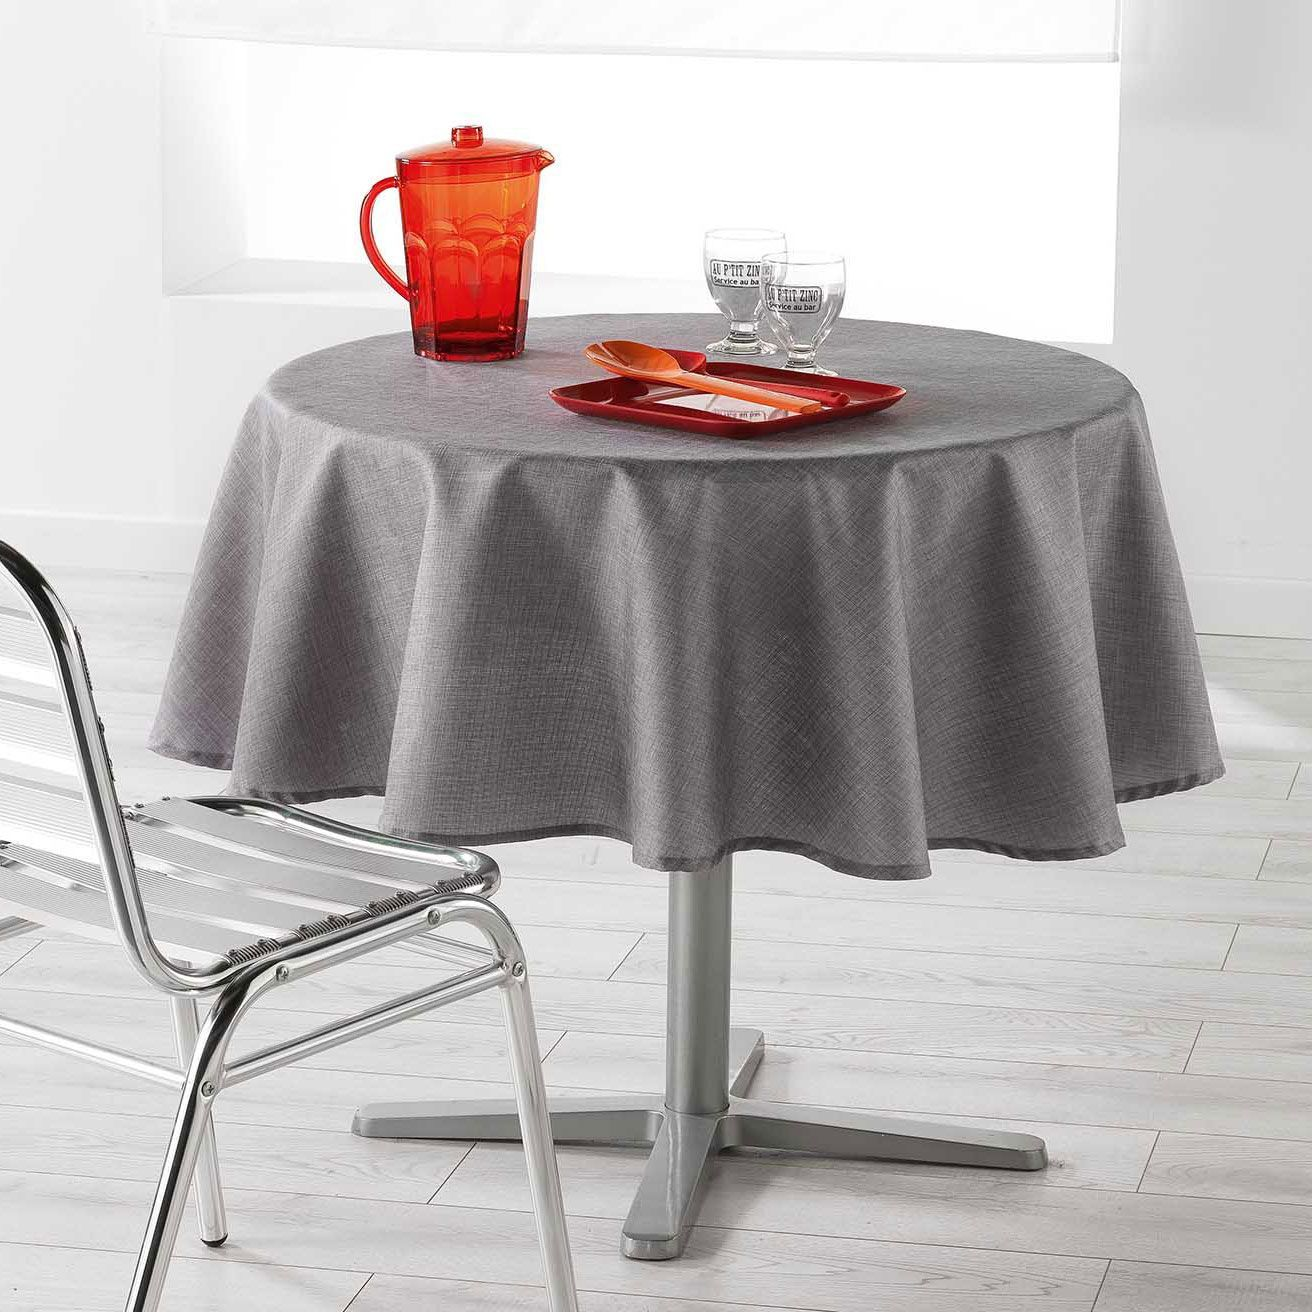 nappe ronde 180 cm enduite newton gris anthracite nappe de table eminza. Black Bedroom Furniture Sets. Home Design Ideas